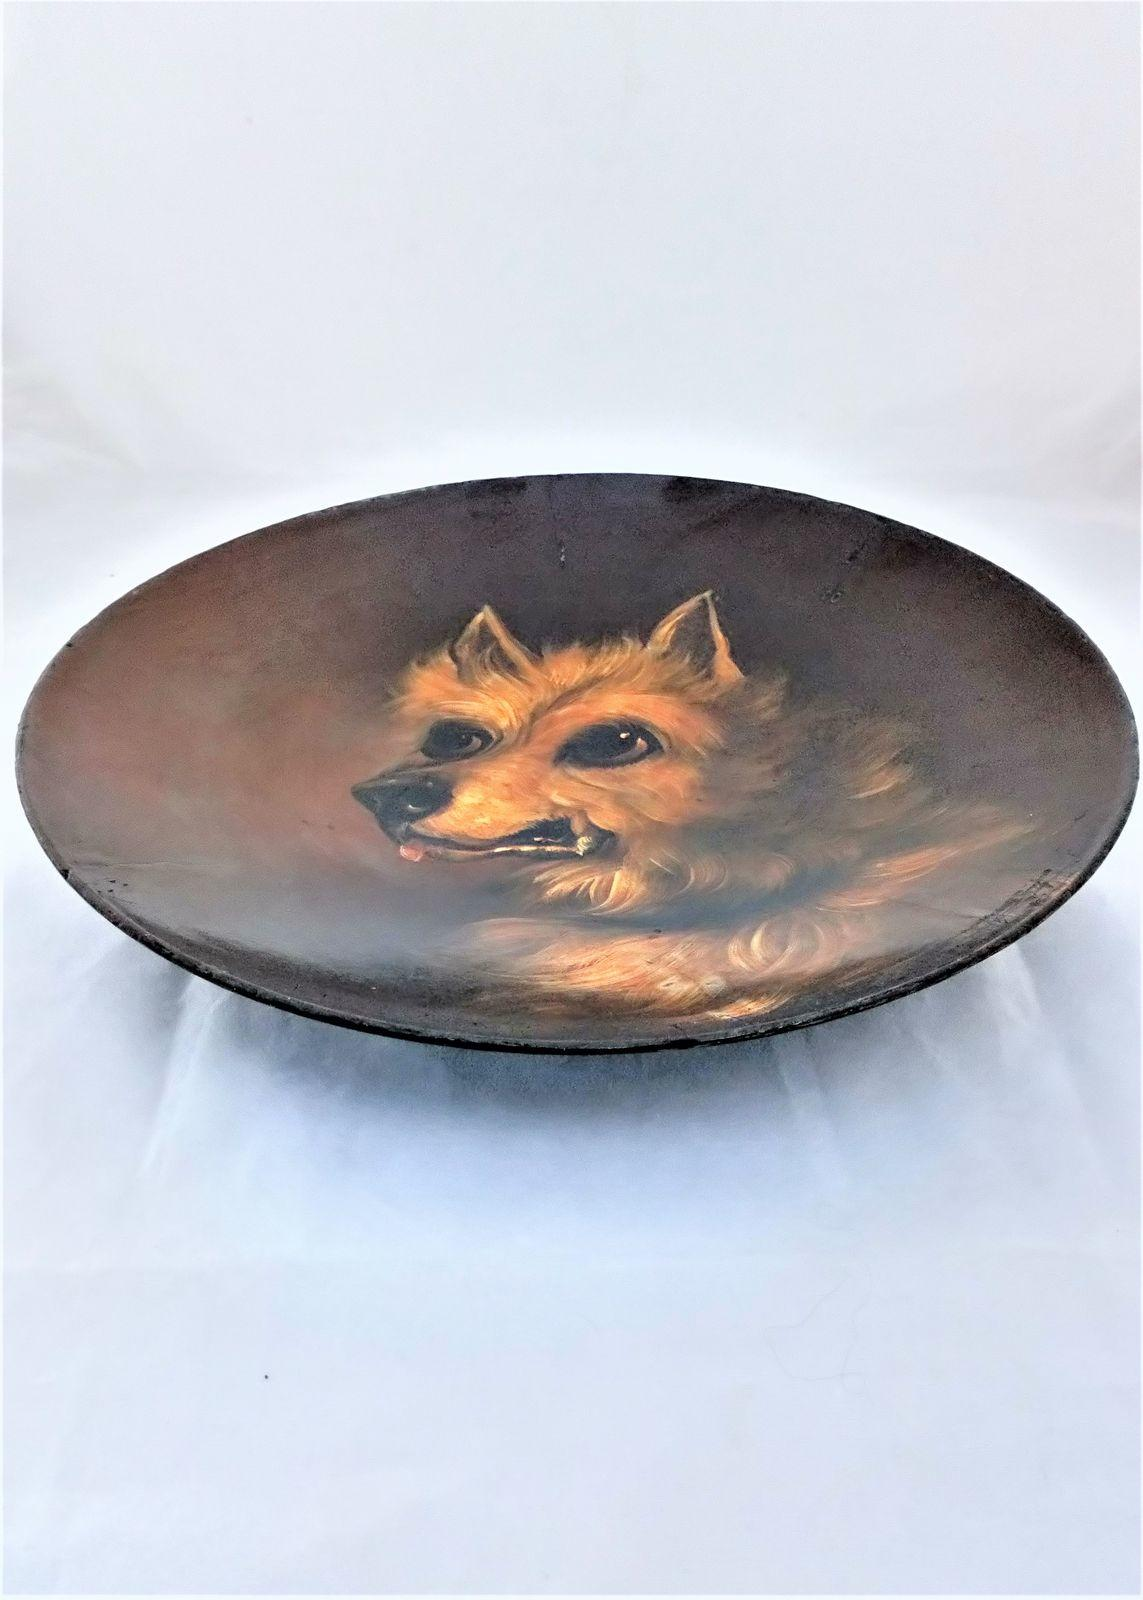 Papier Mache Plate Hand Painted Dog Chihuahua Antique Victorian c 1880